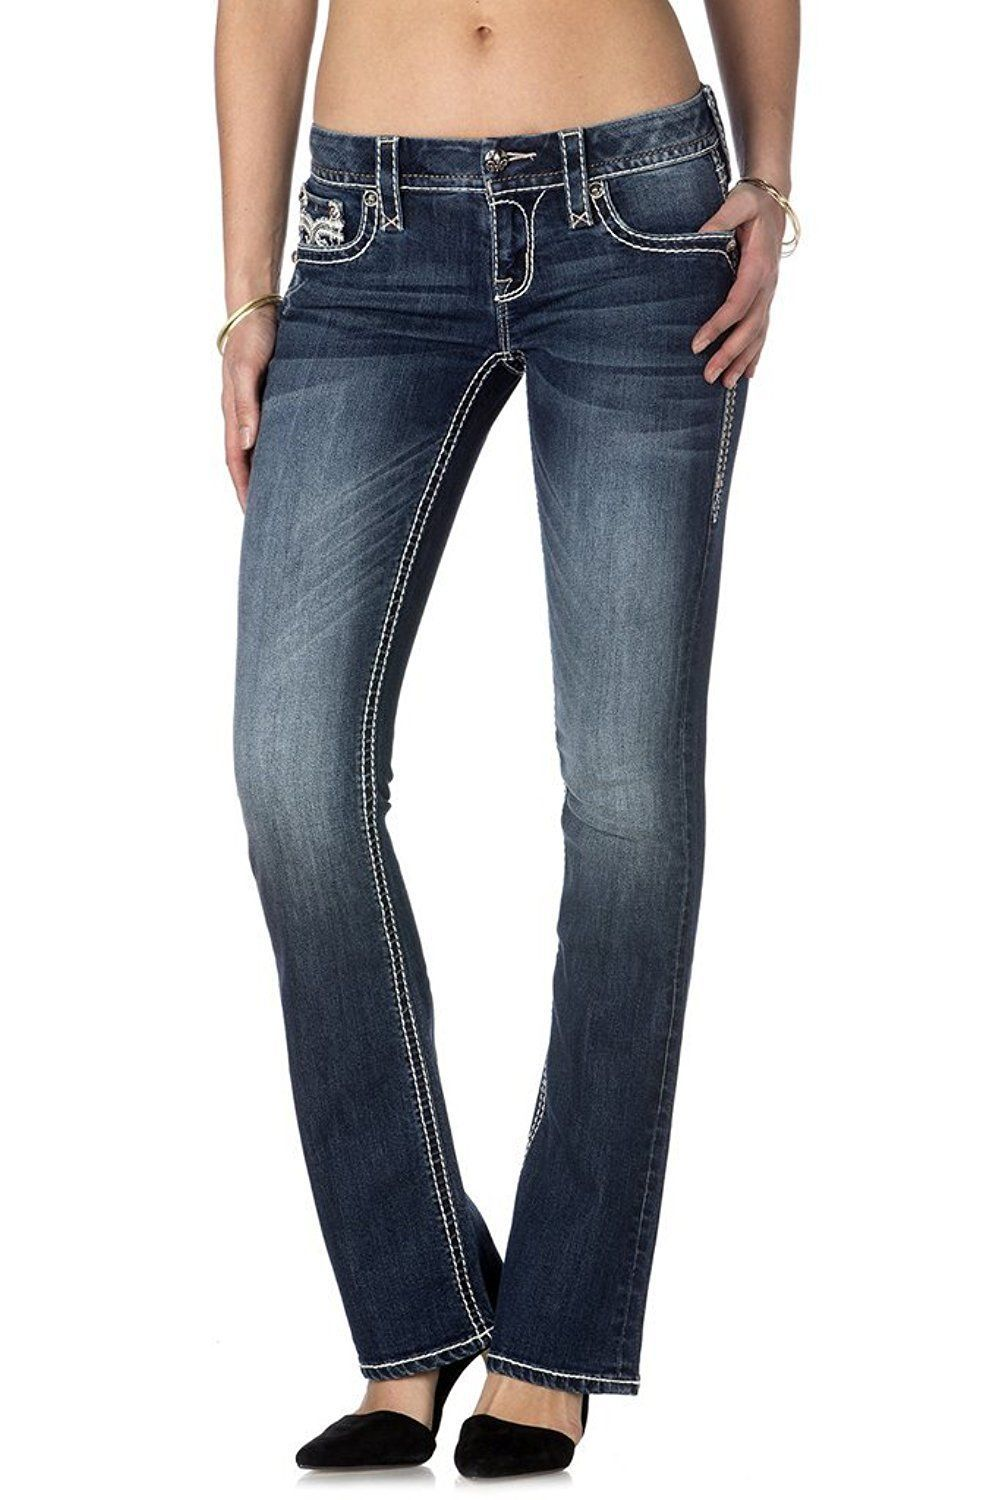 NEW ROCK REVIVAL WOMEN'S PREMIUM BOOT CUT LIGHT DENIM JEANS PANTS ROYAL B202